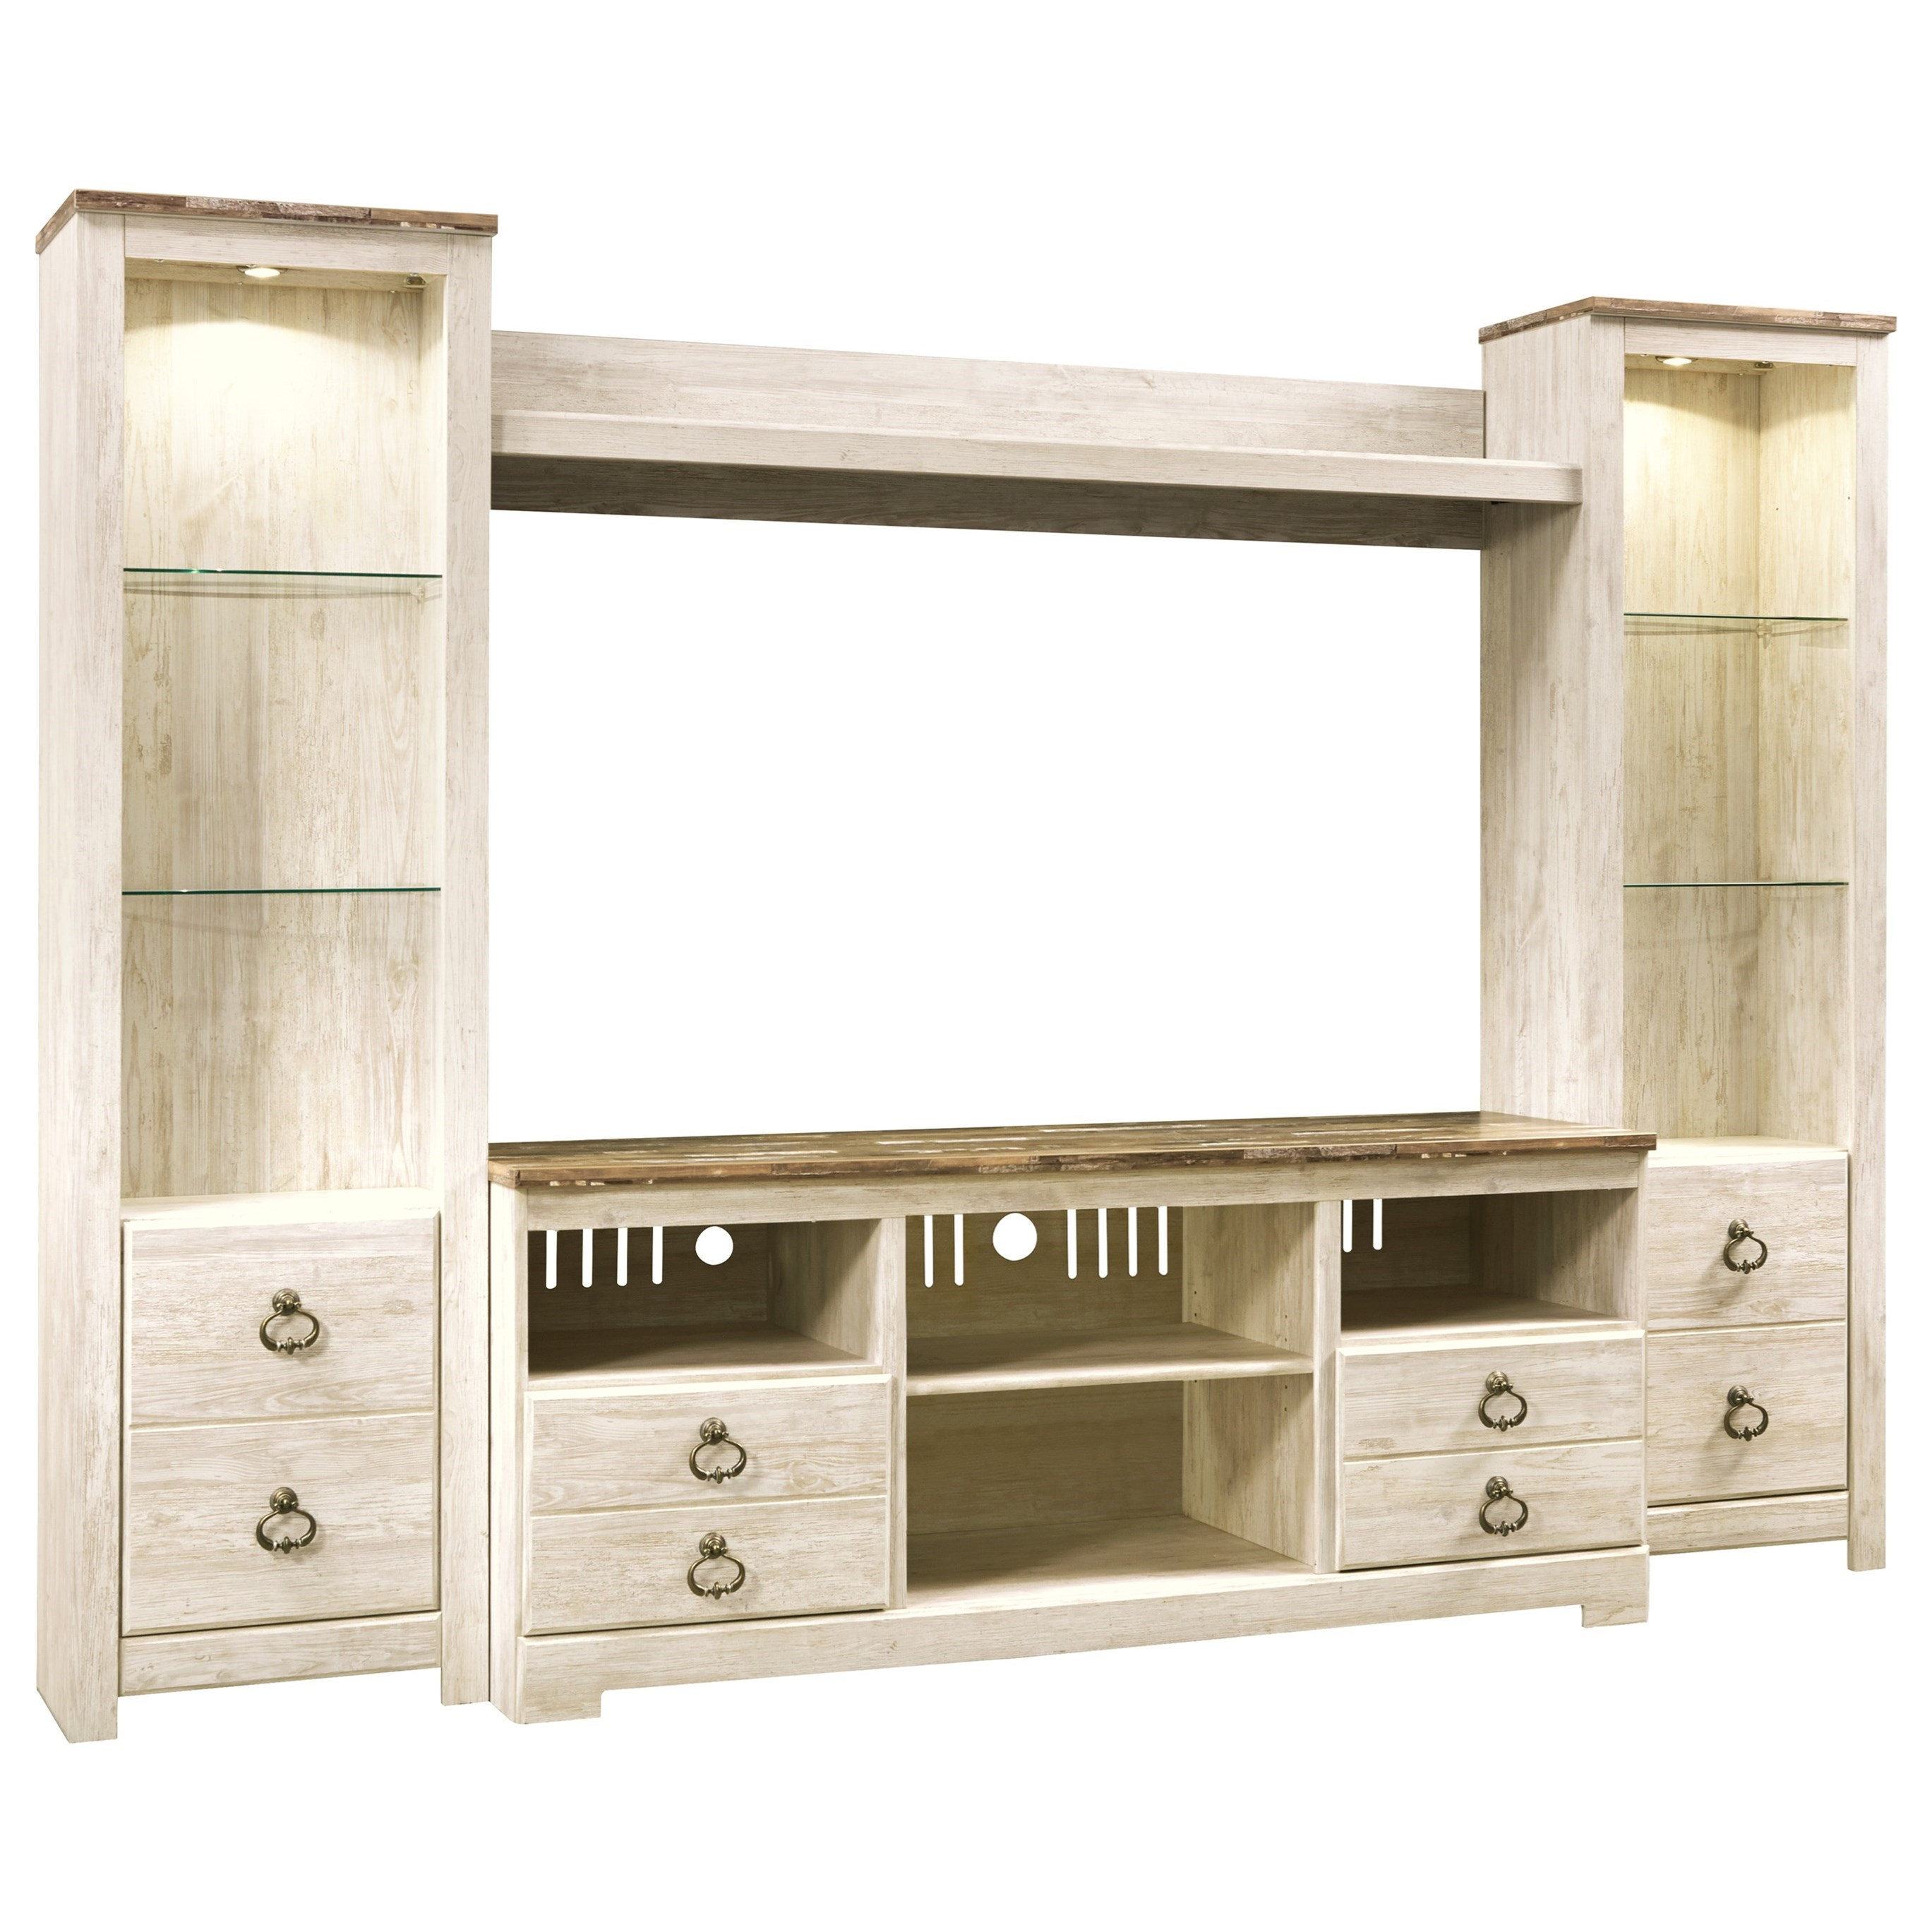 Willowton Entertainment Center by Signature Design by Ashley at Zak's Warehouse Clearance Center